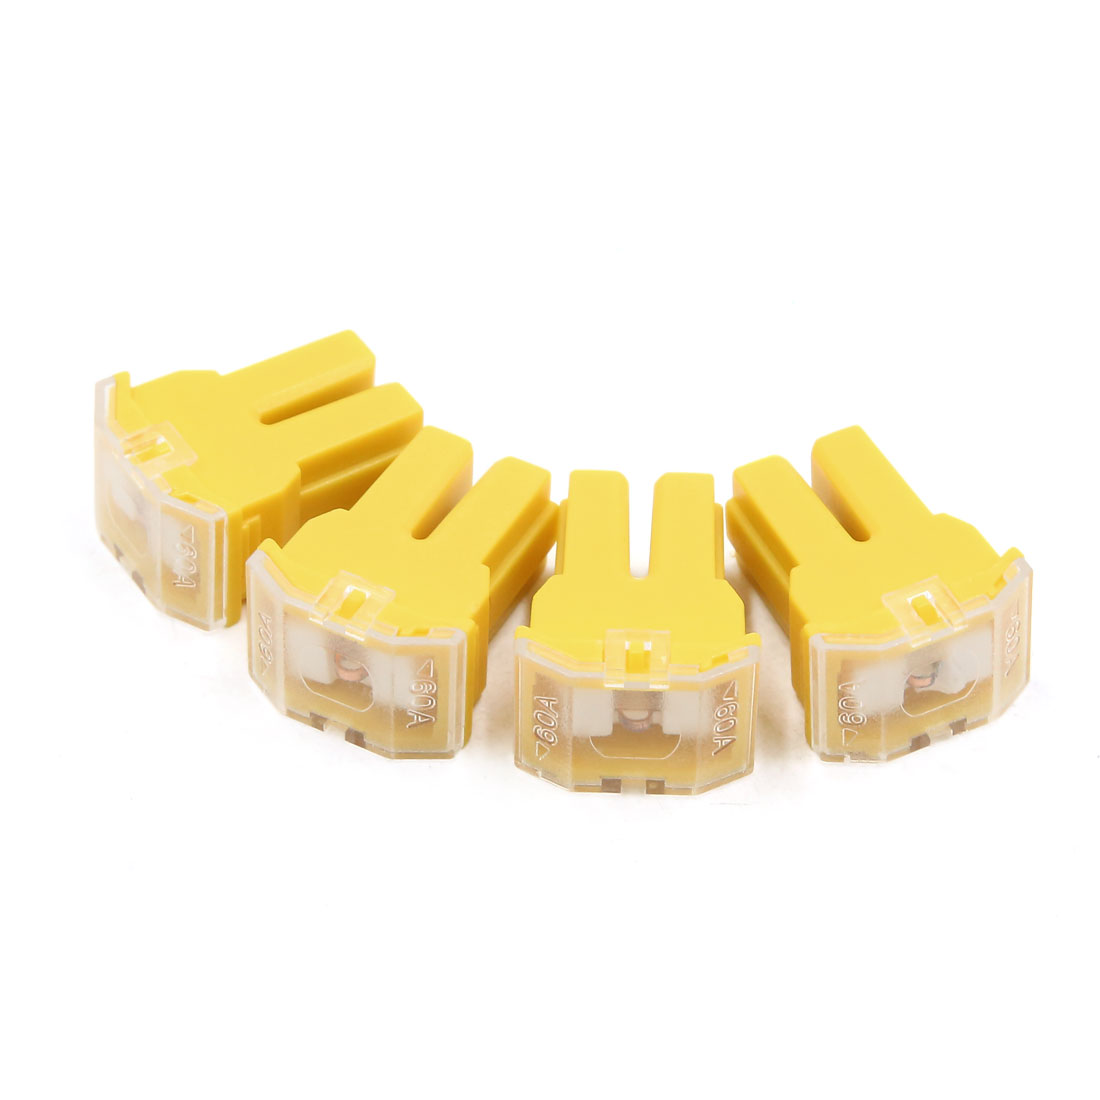 4pcs 60A Yellow Plastic Casing Female PAL Cartridge Fuse for Auto Car Vehicle